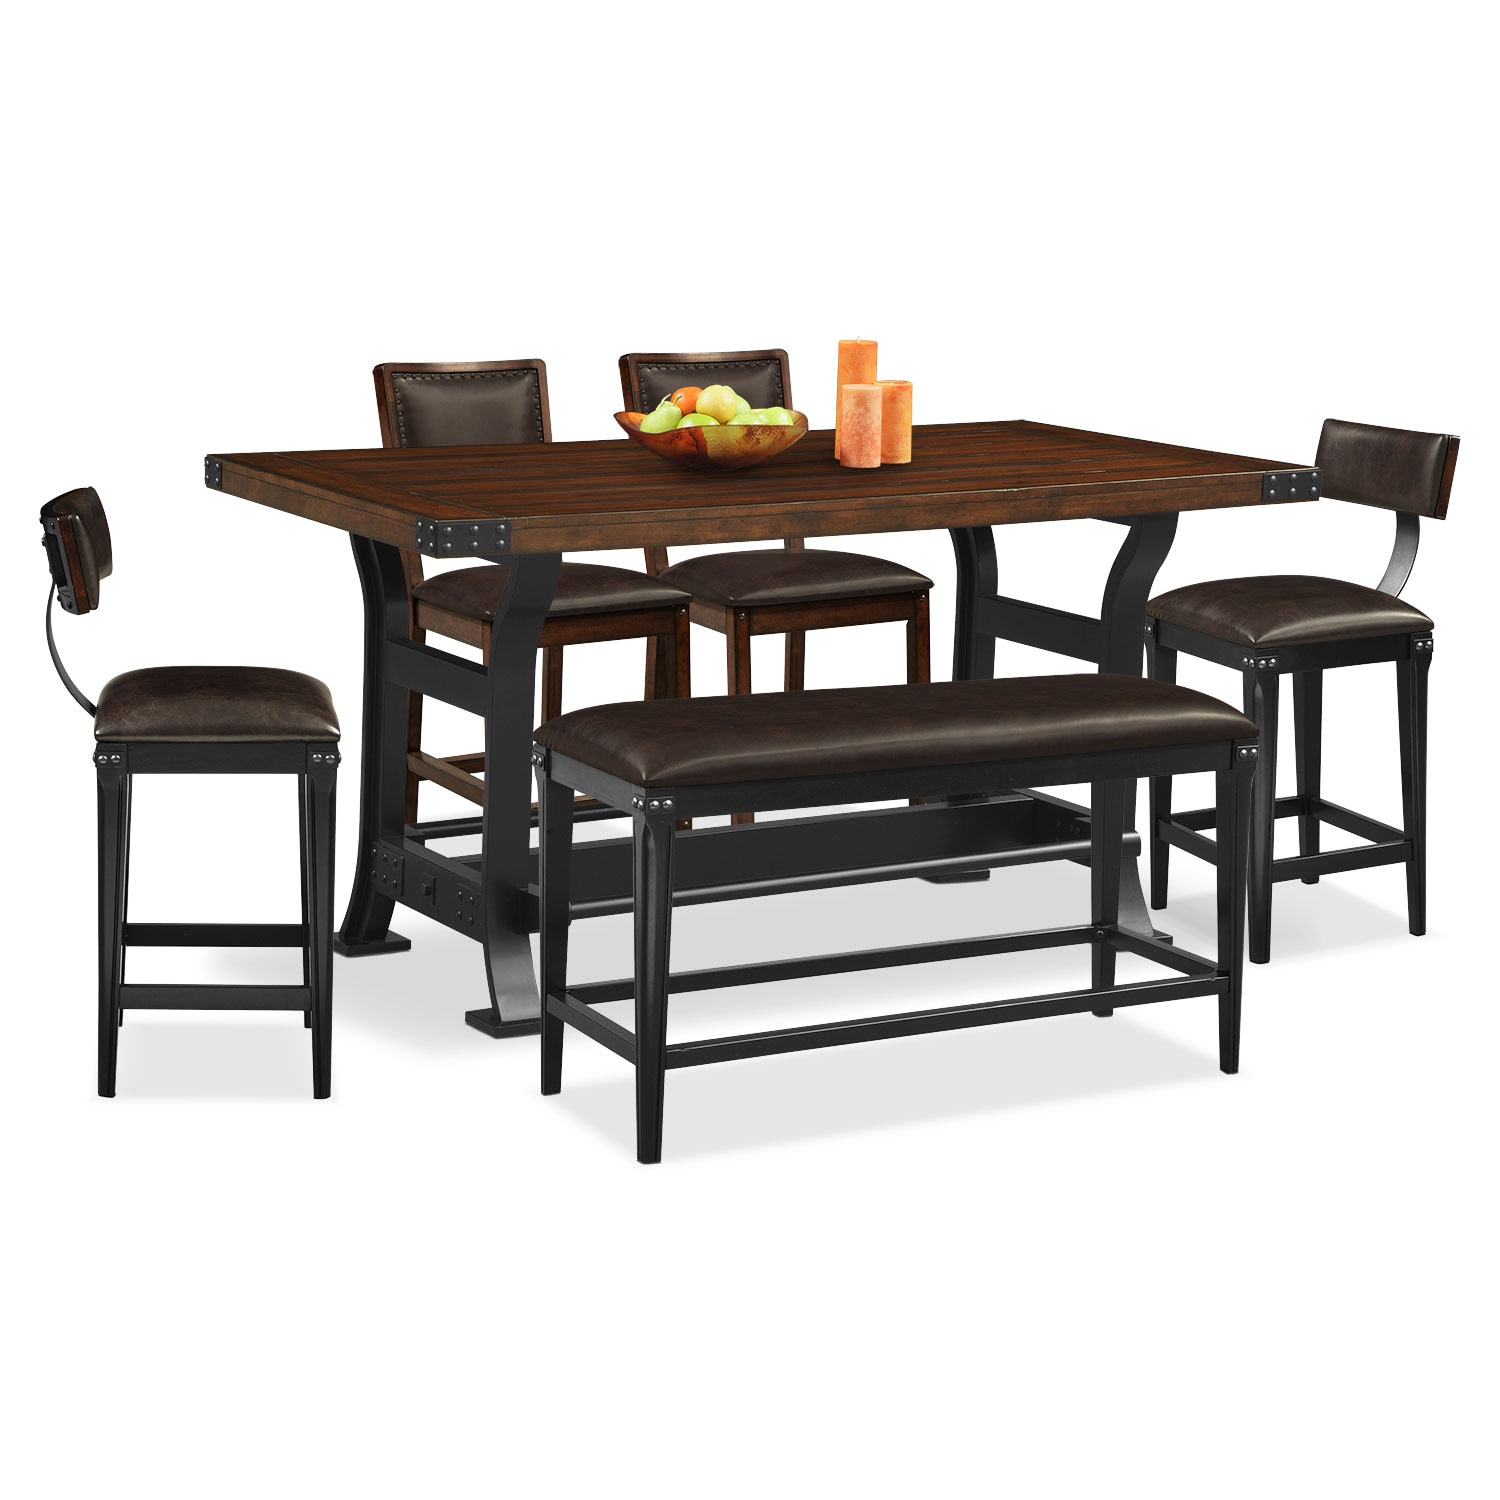 newcastle counter height table 2 chairs 2 stools and bench mahogany value city furniture. Black Bedroom Furniture Sets. Home Design Ideas